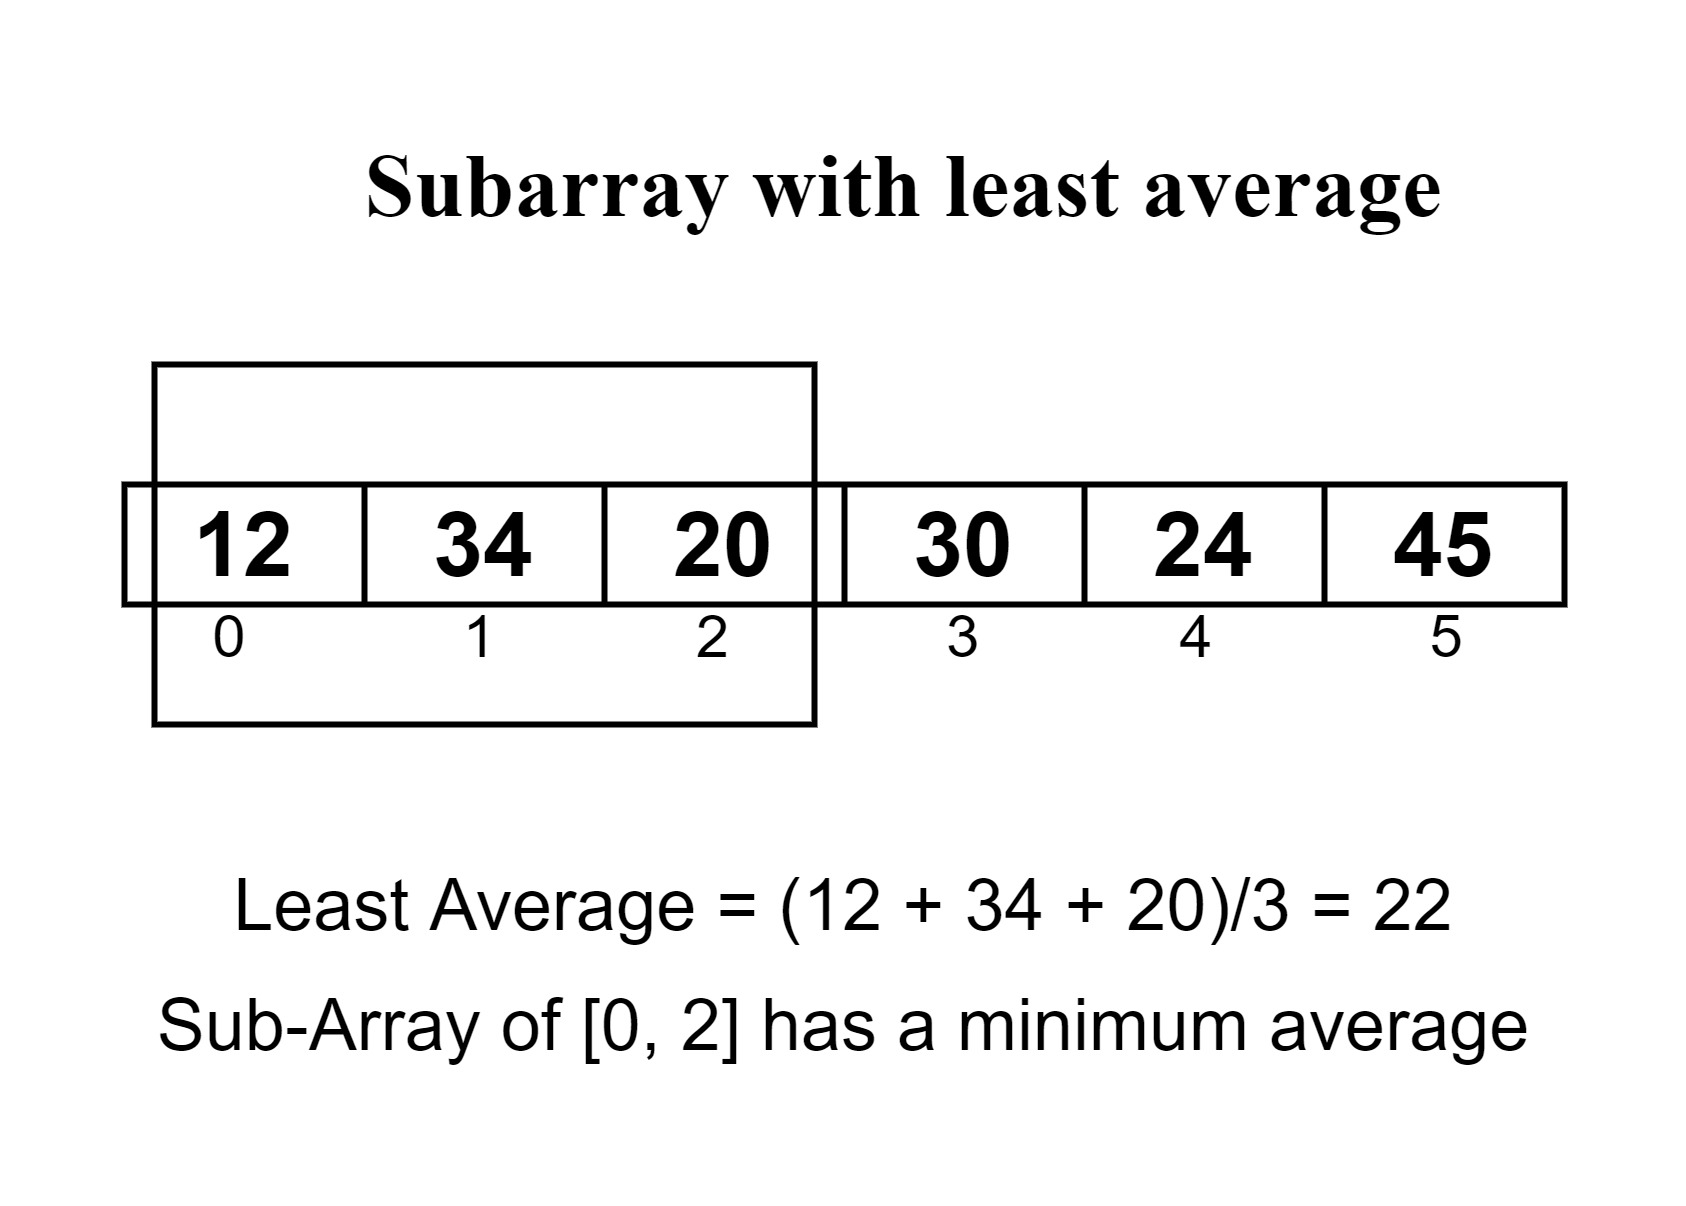 Find the subarray with least average